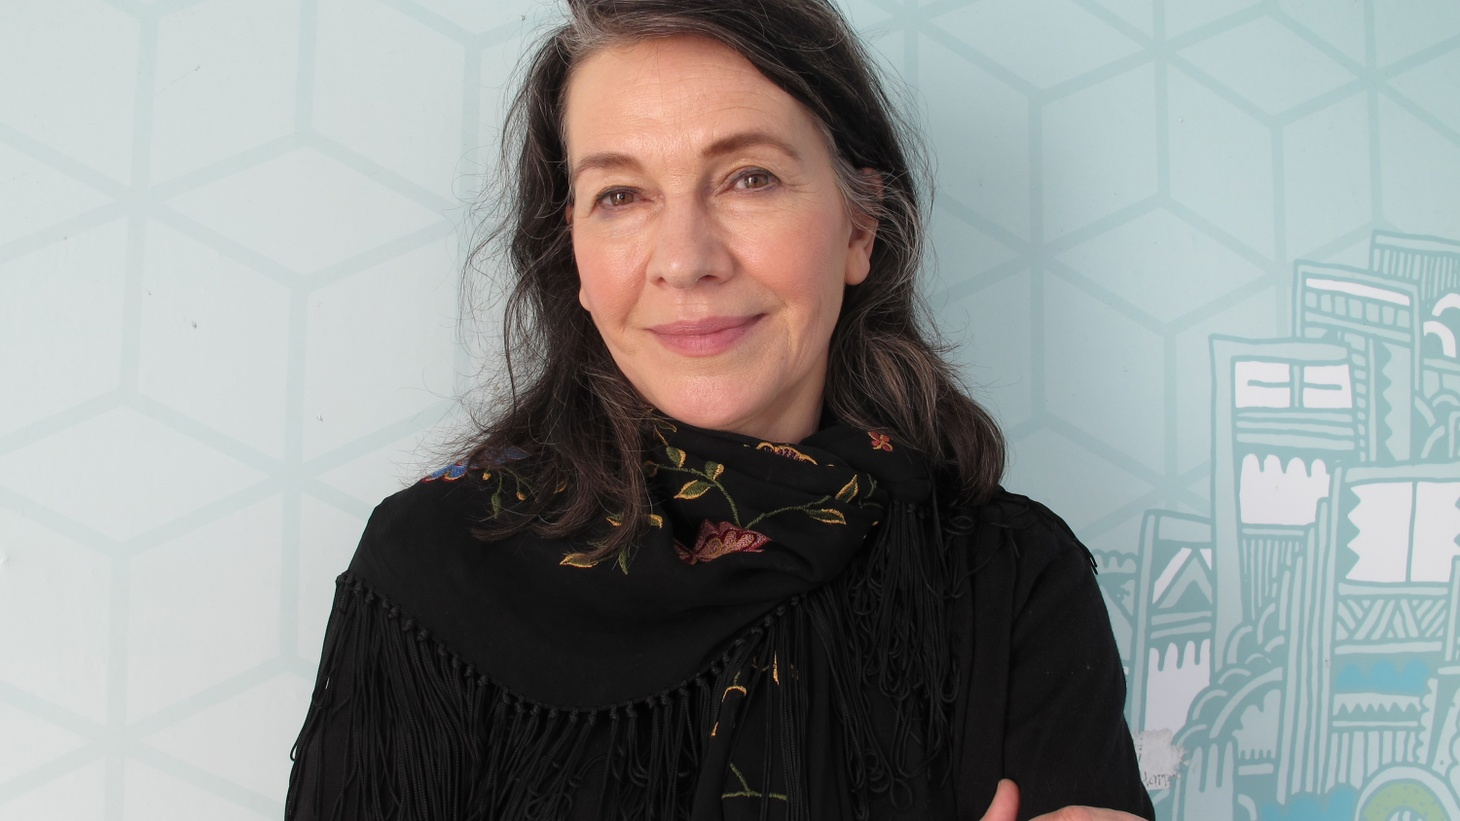 In part two of this conversation about LaRose – Louise Erdrich's novel about an act of restorative justice that tests the boundaries between two families – the discussion explores the non-linear form the novel moves in towards seeking balance and resolution.